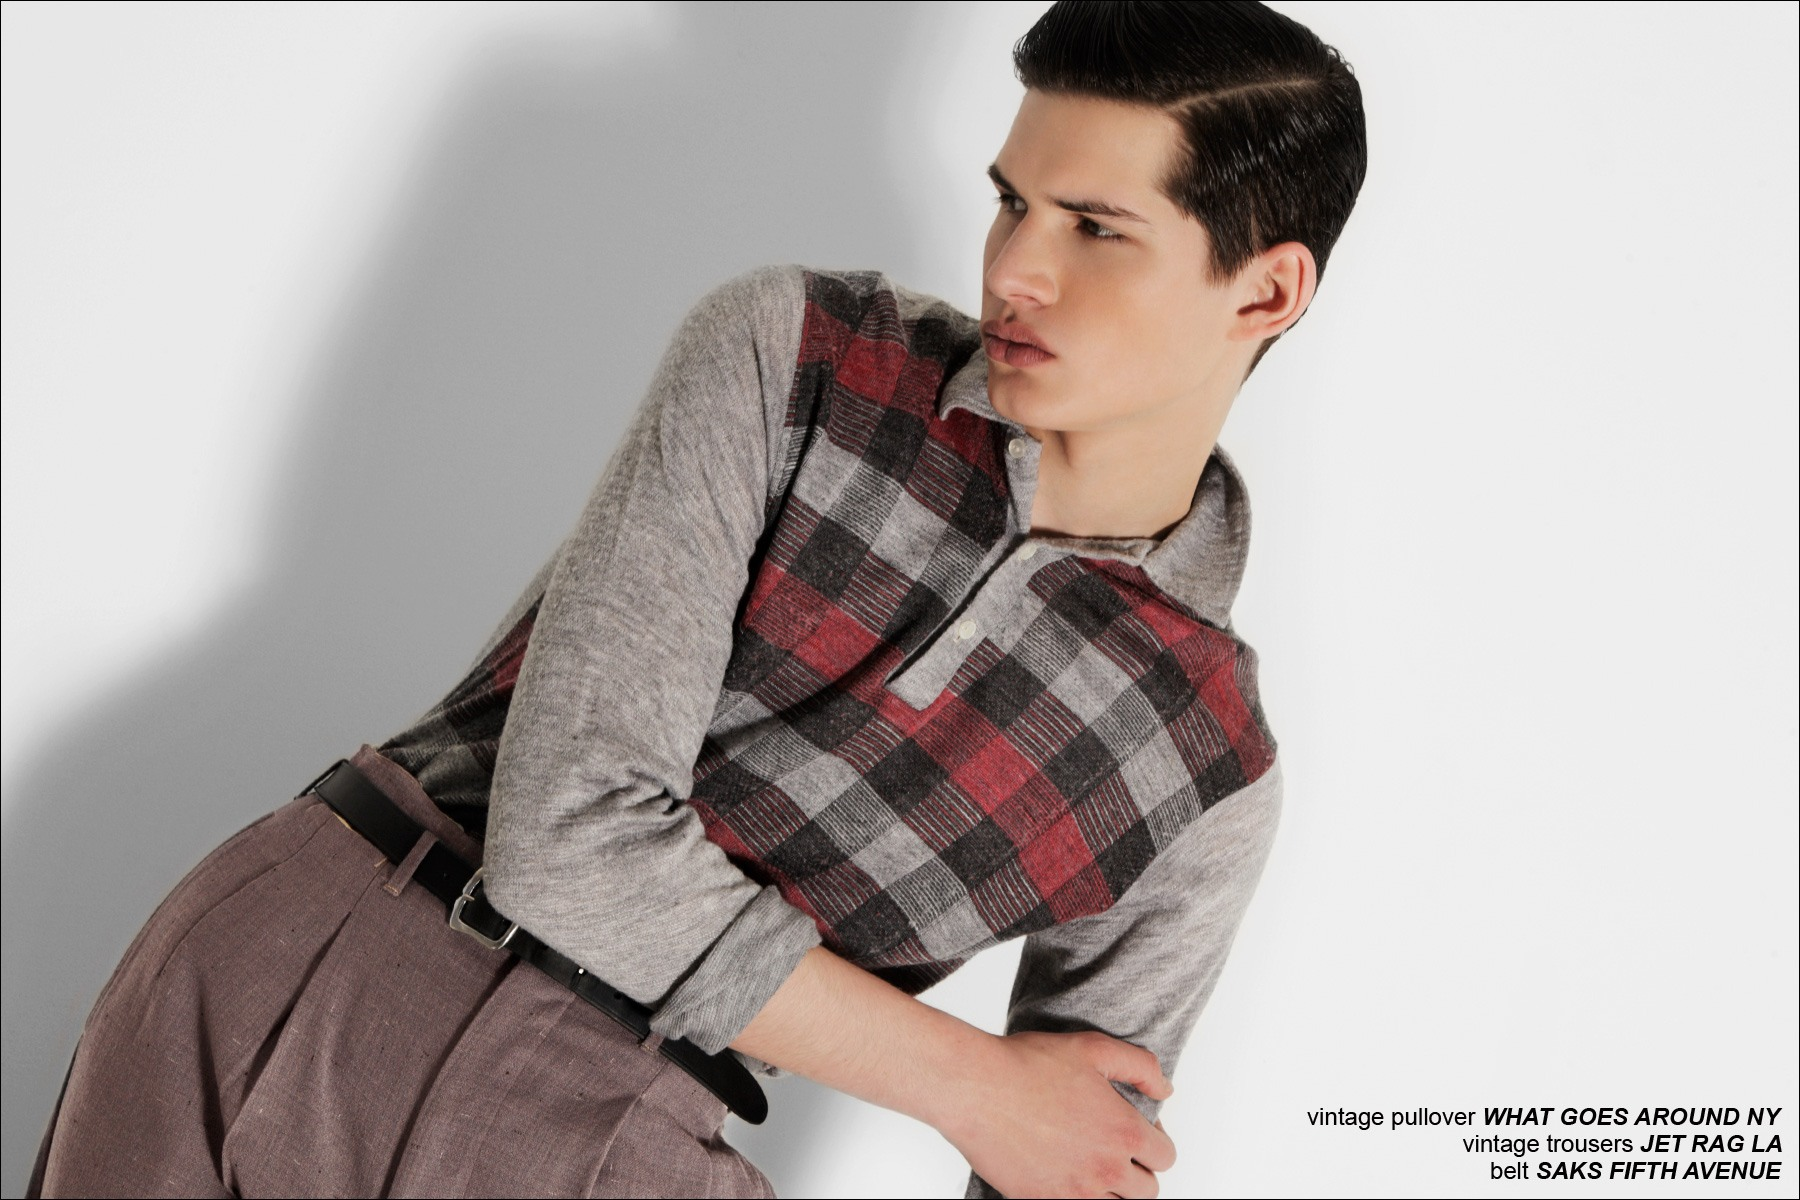 Fusion model Ben Stift photographed by Alexander Thompson for Ponyboy Magazine vintage men's editorial.